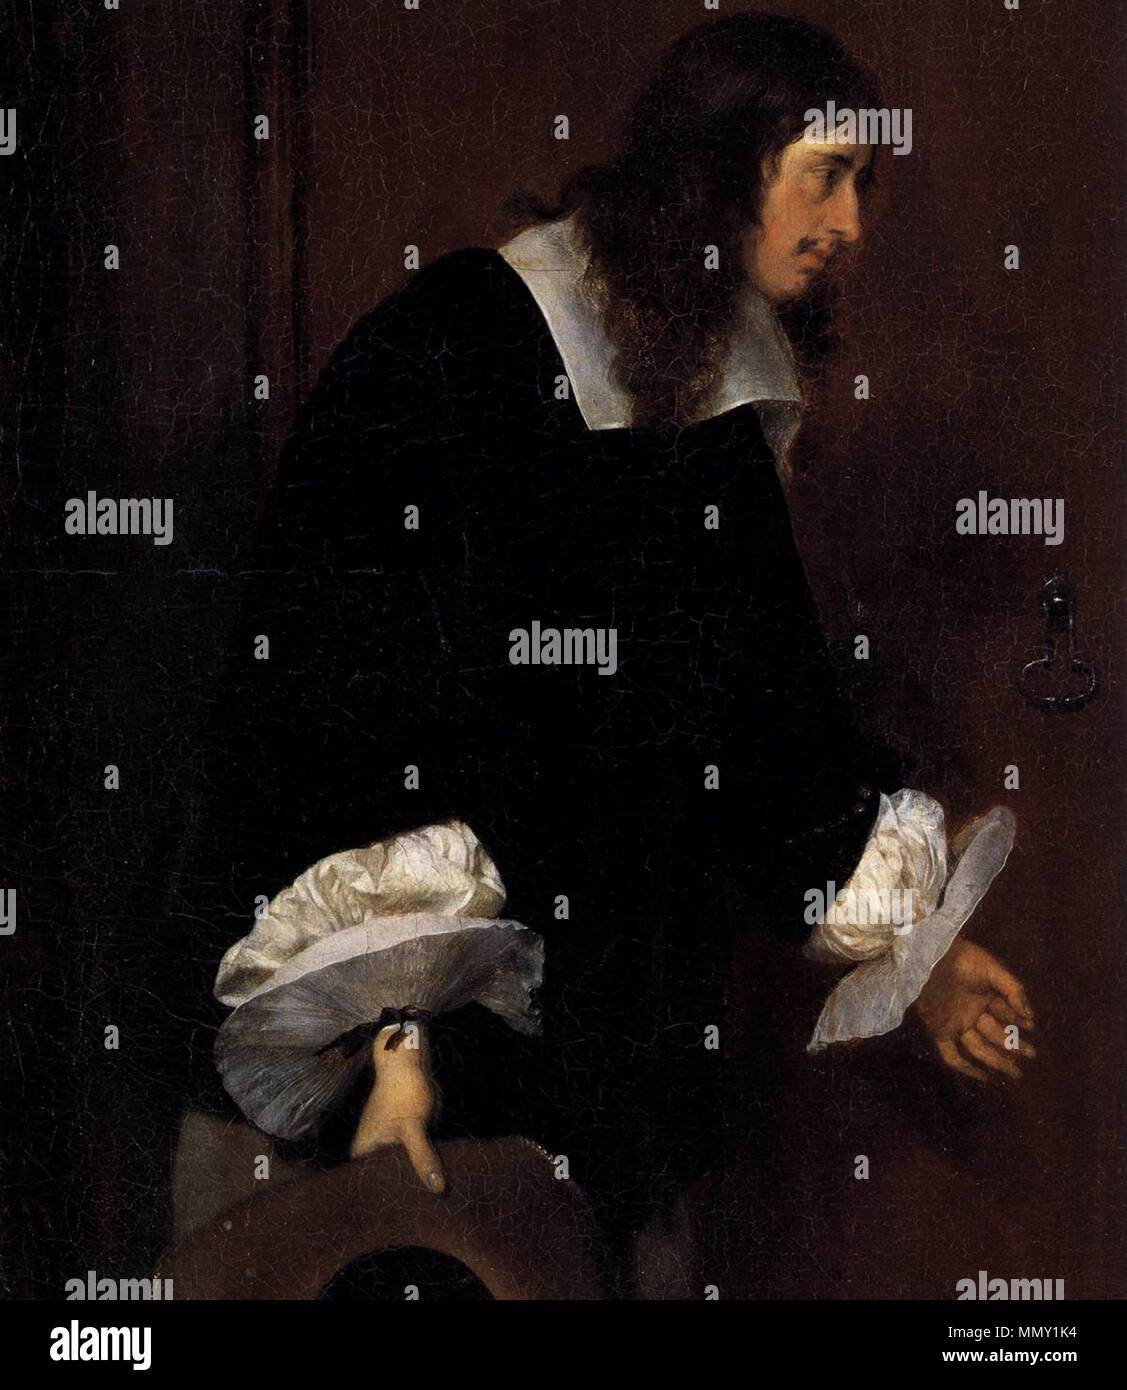 The Suitor's Visit (detail). circa 1658. Gerard ter Borch (II) - The Suitor's Visit (detail) - WGA22126 Stock Photo